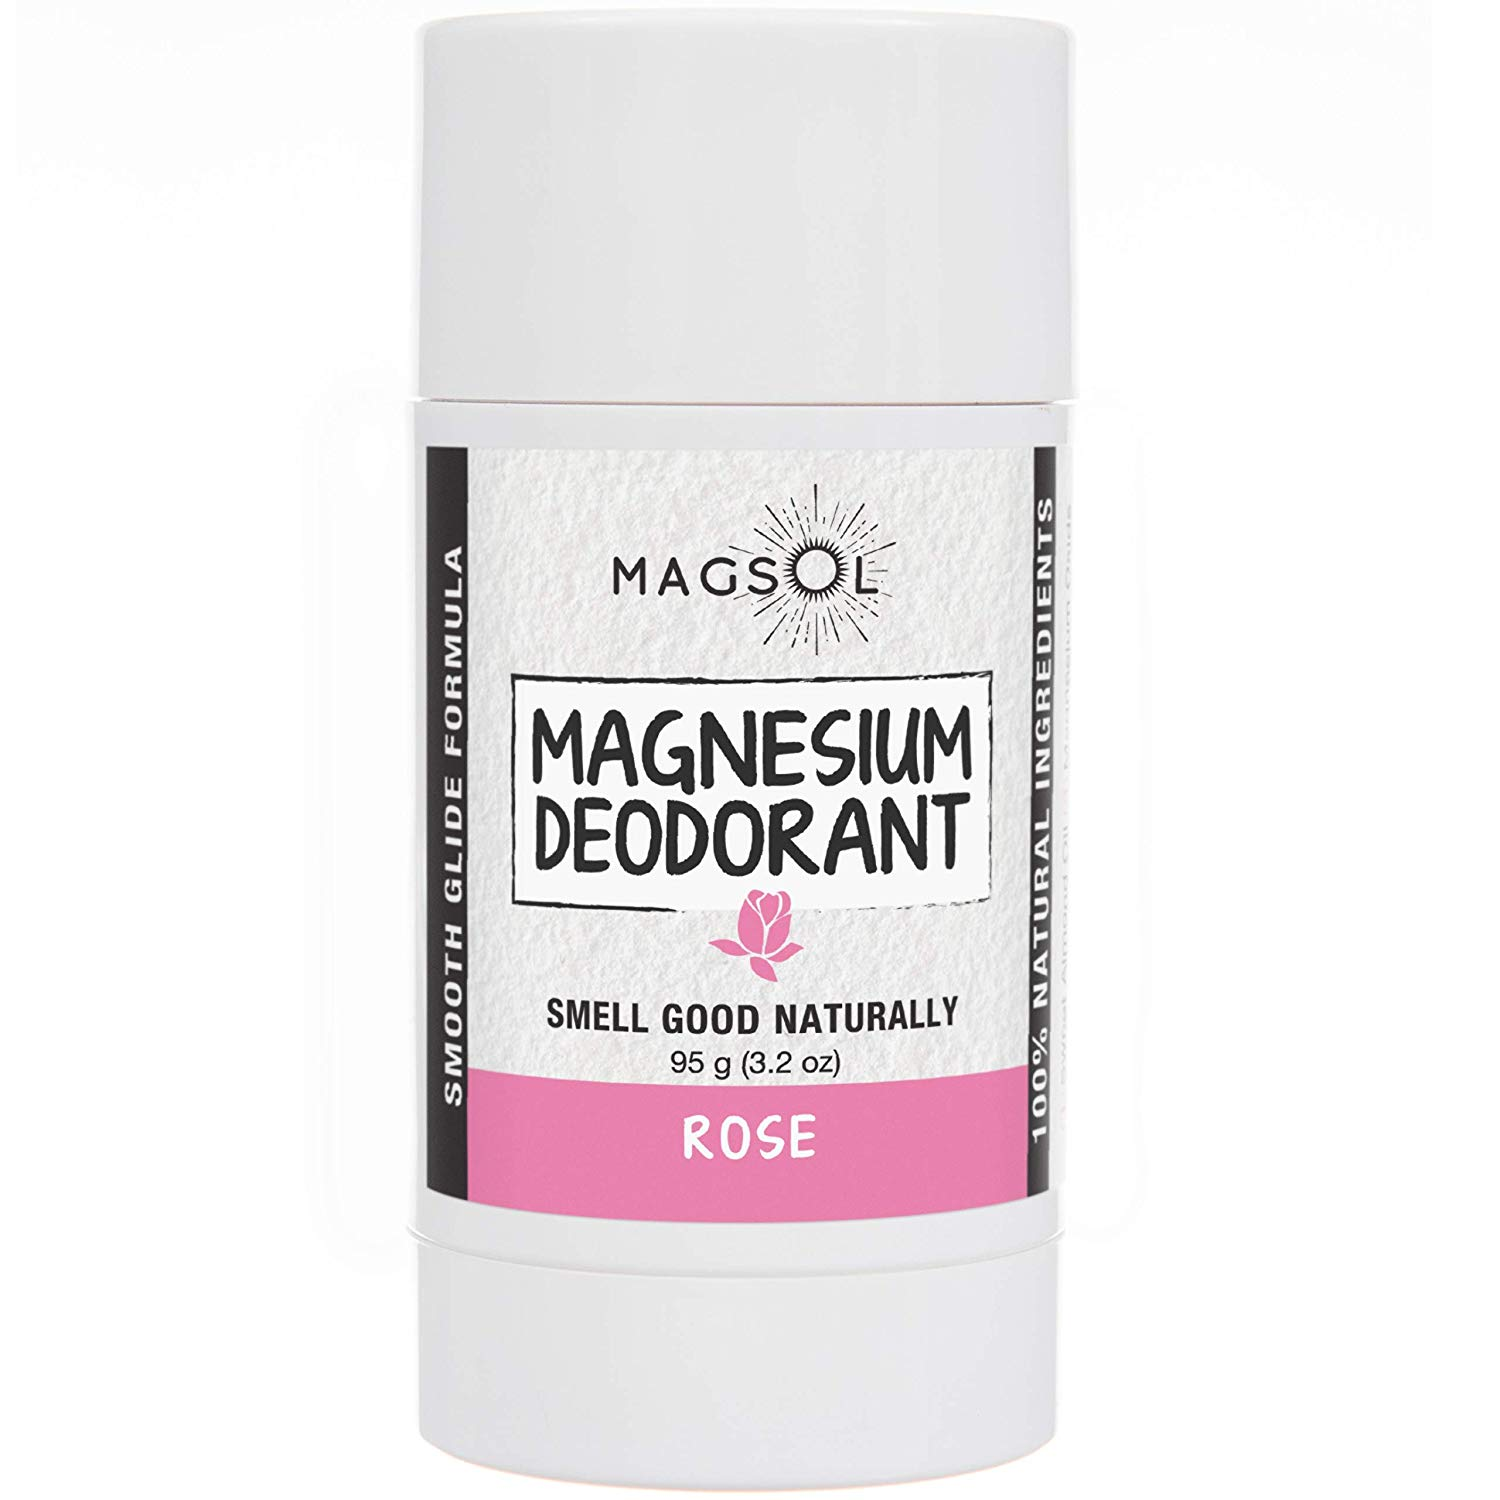 best all natural deodorant magsol review